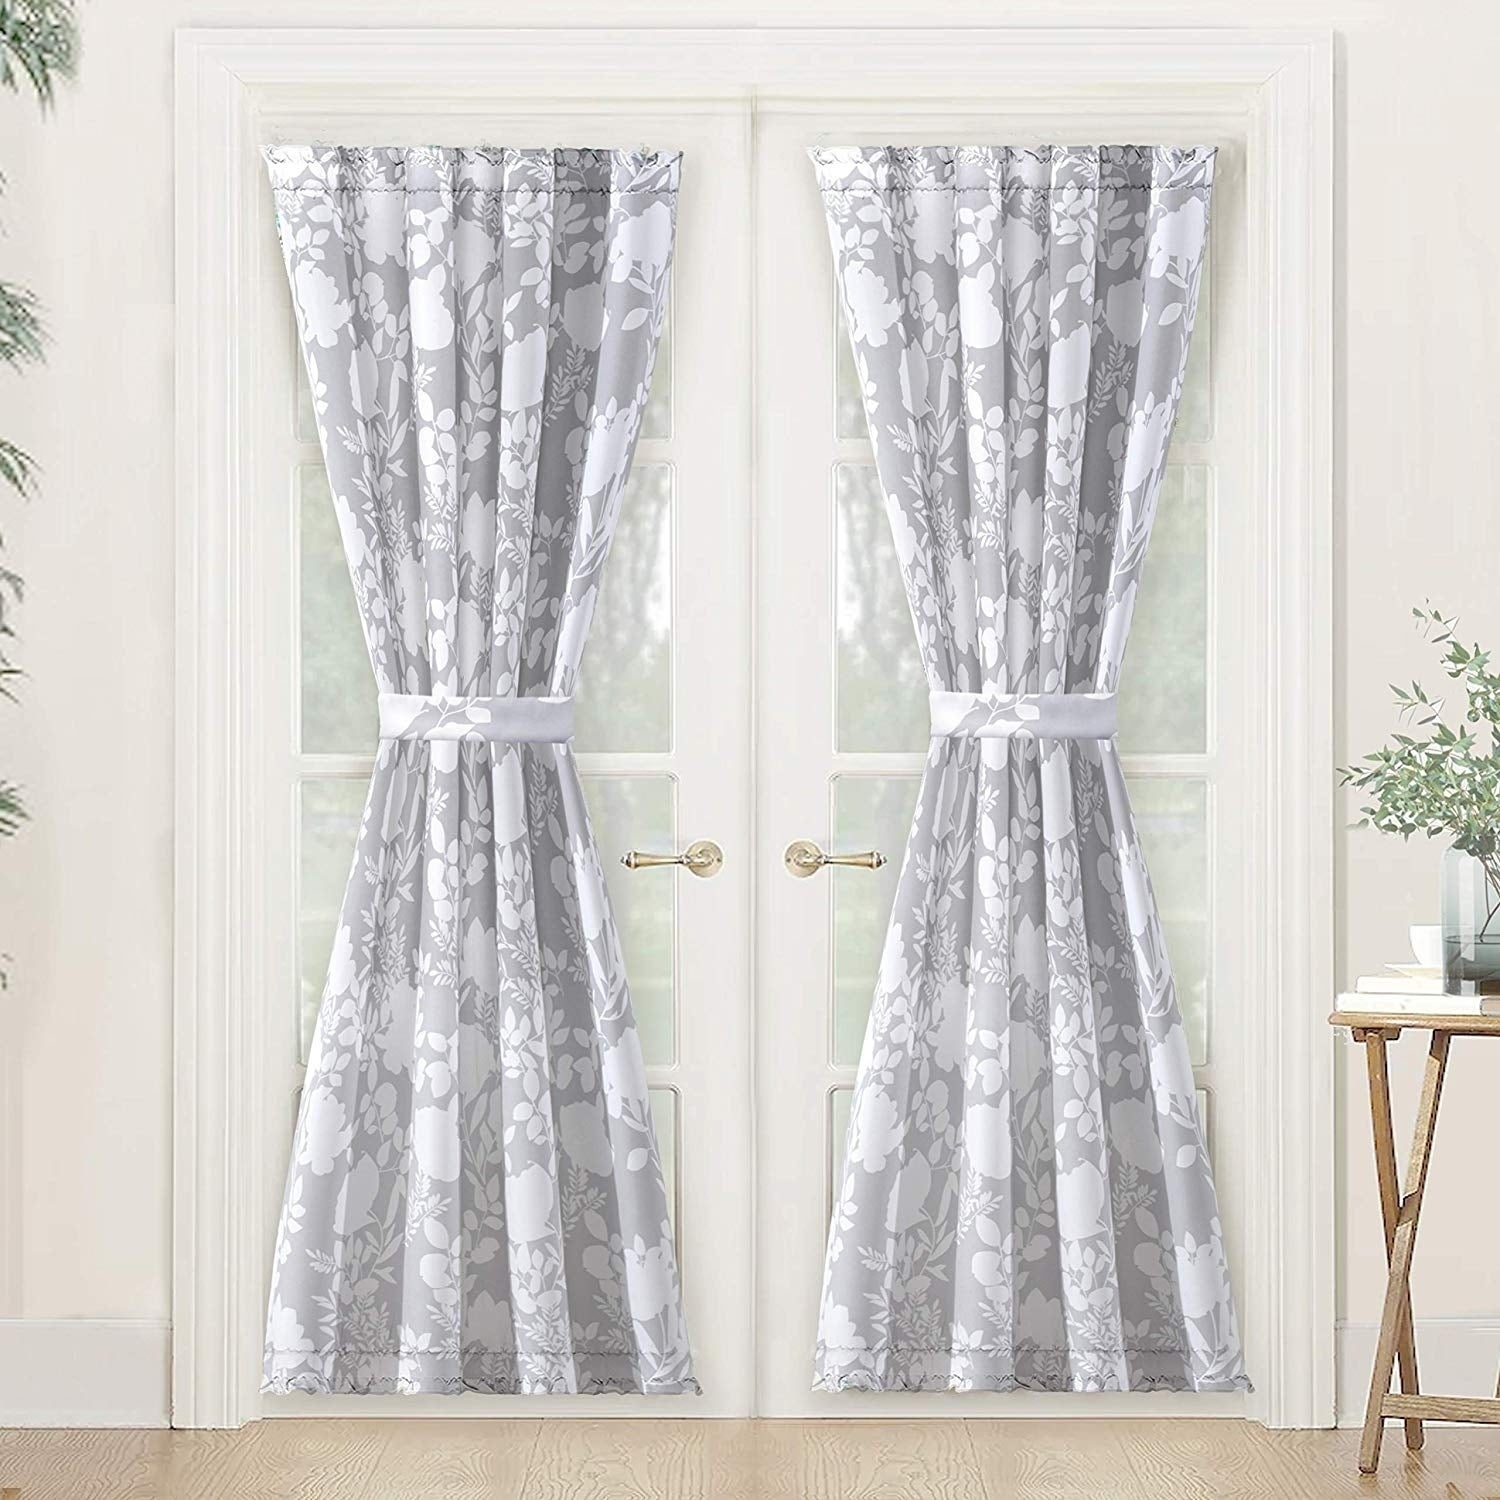 Driftaway Floral Delight Botanic Rod Pocket Room Darkening Patio French Door Single Curtain Panel With Regard To Nantahala Rod Pocket Room Darkening Patio Door Single Curtain Panels (View 16 of 20)